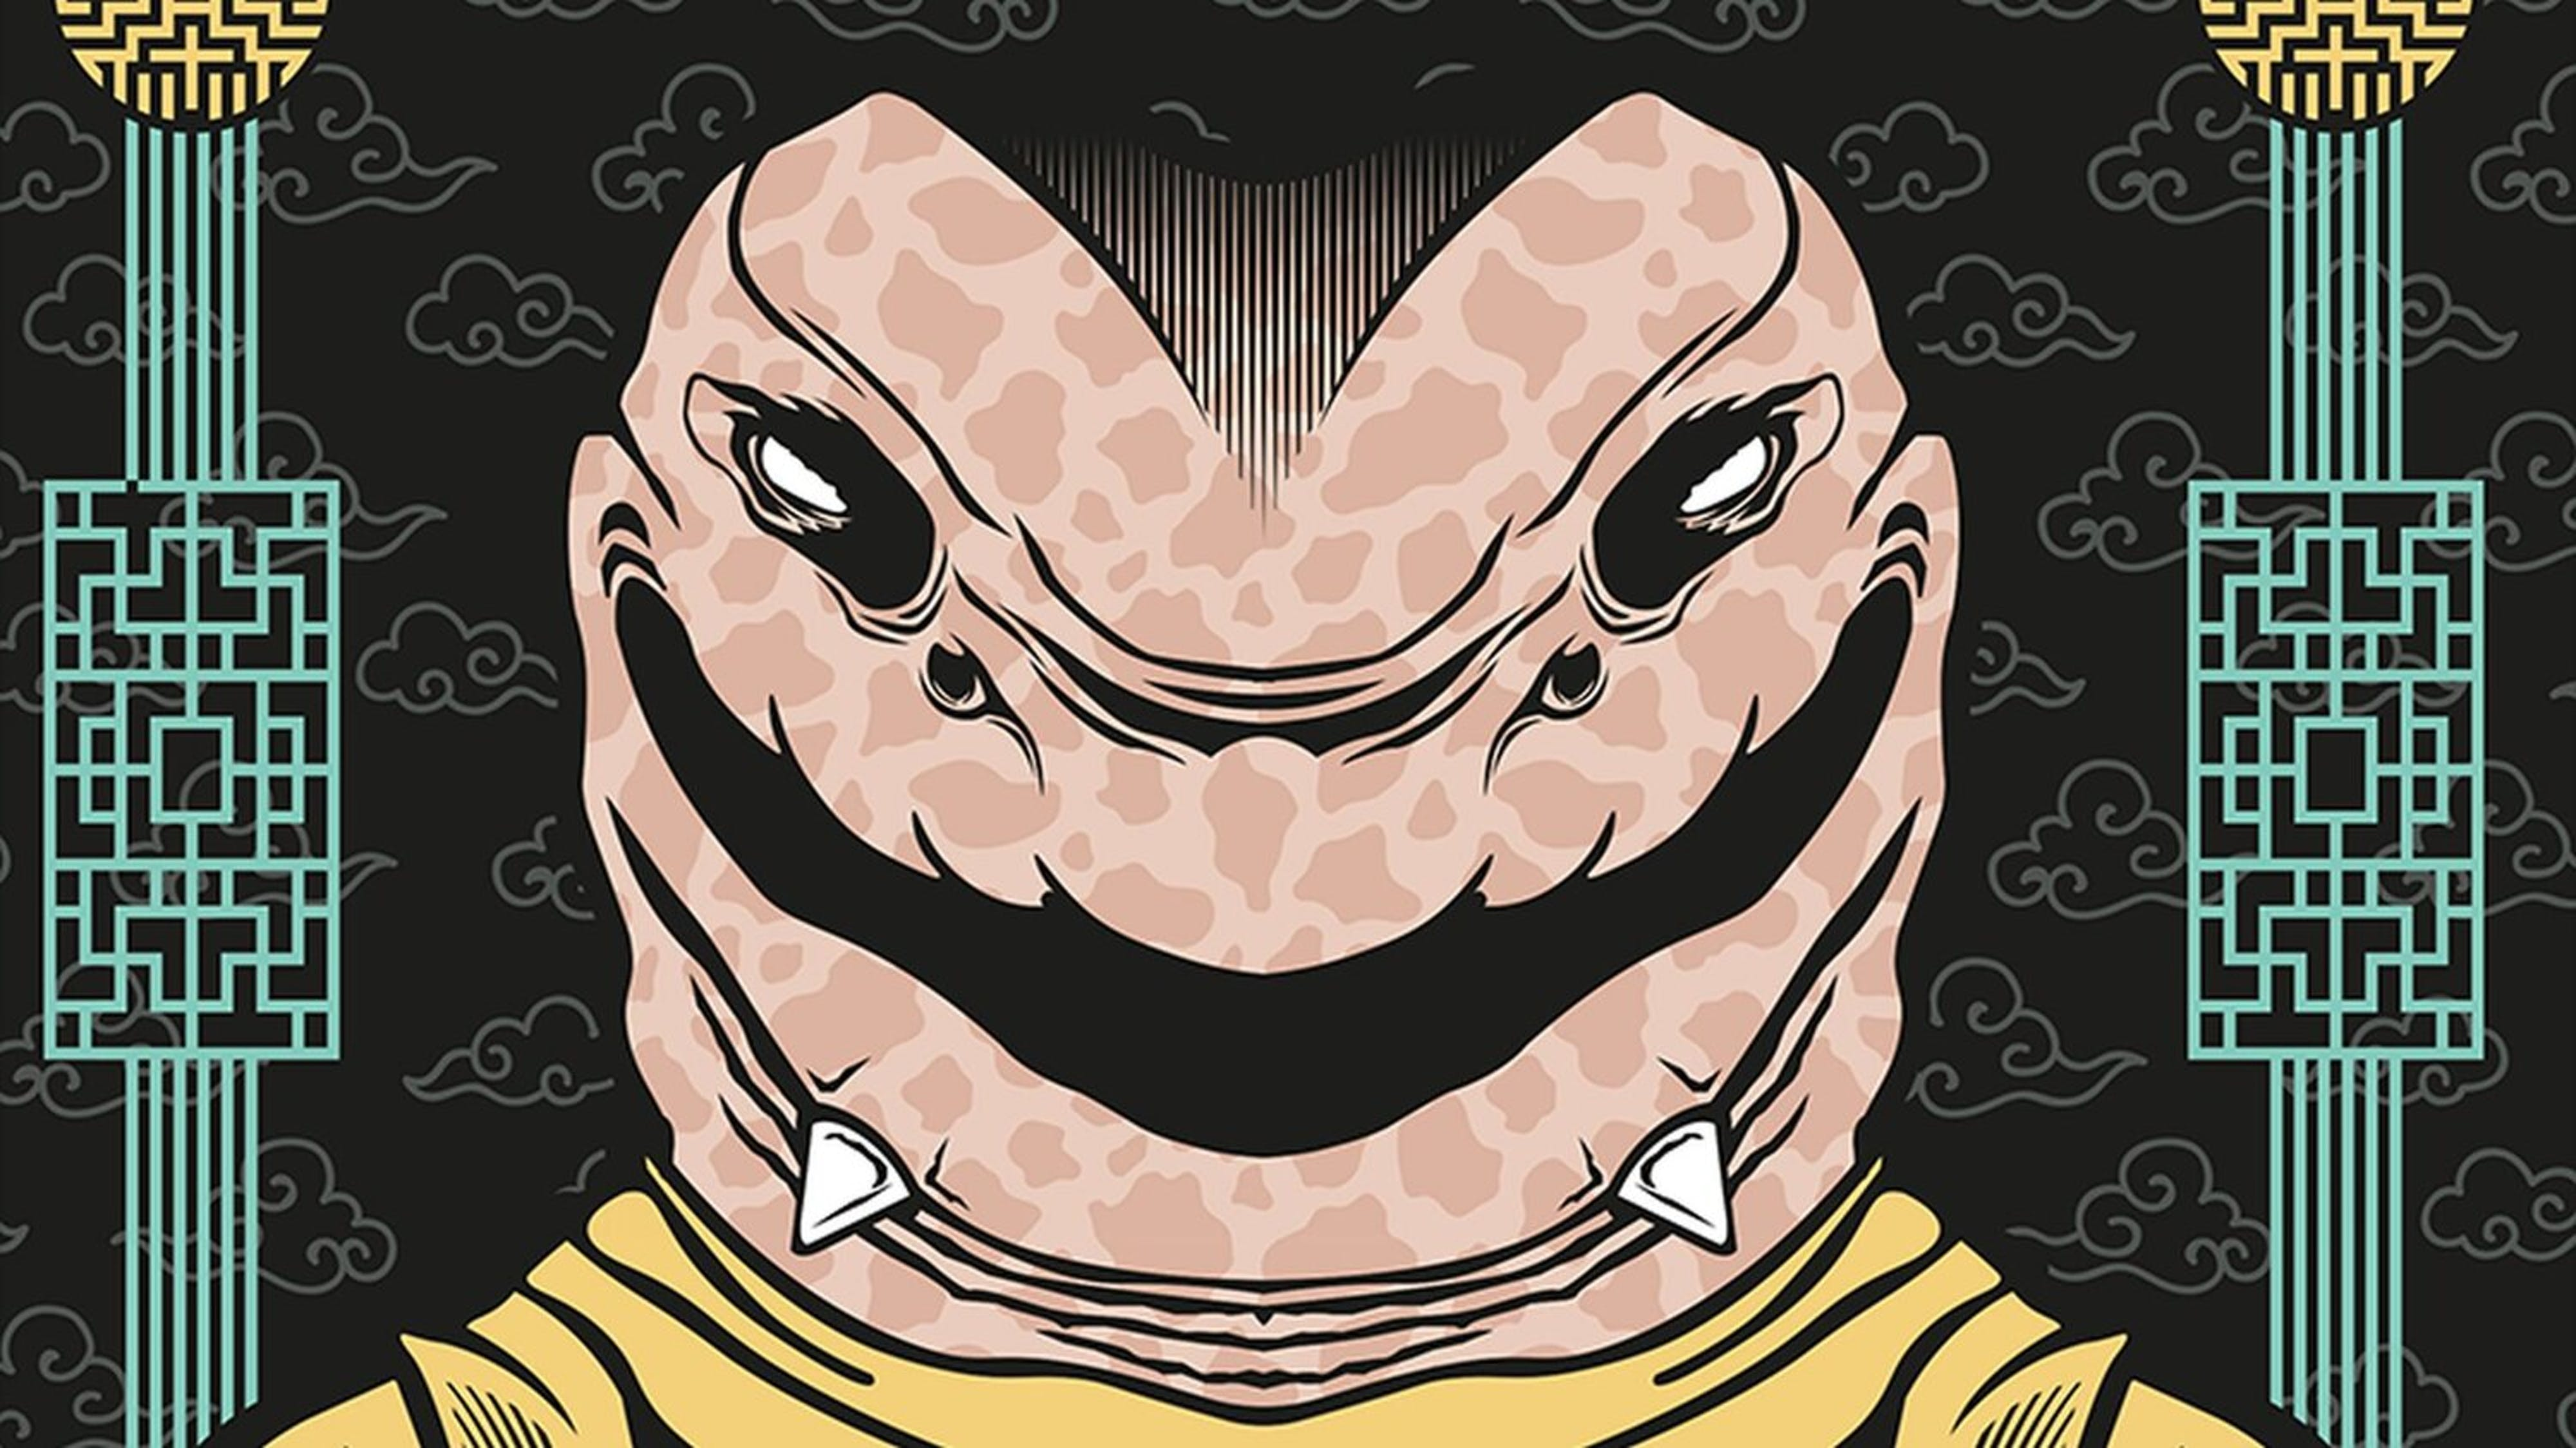 Cover art by Joshua Mendenhall for Unbreakable volume 1, featuring a smiling snake with two sharp horns protruding from its chin.